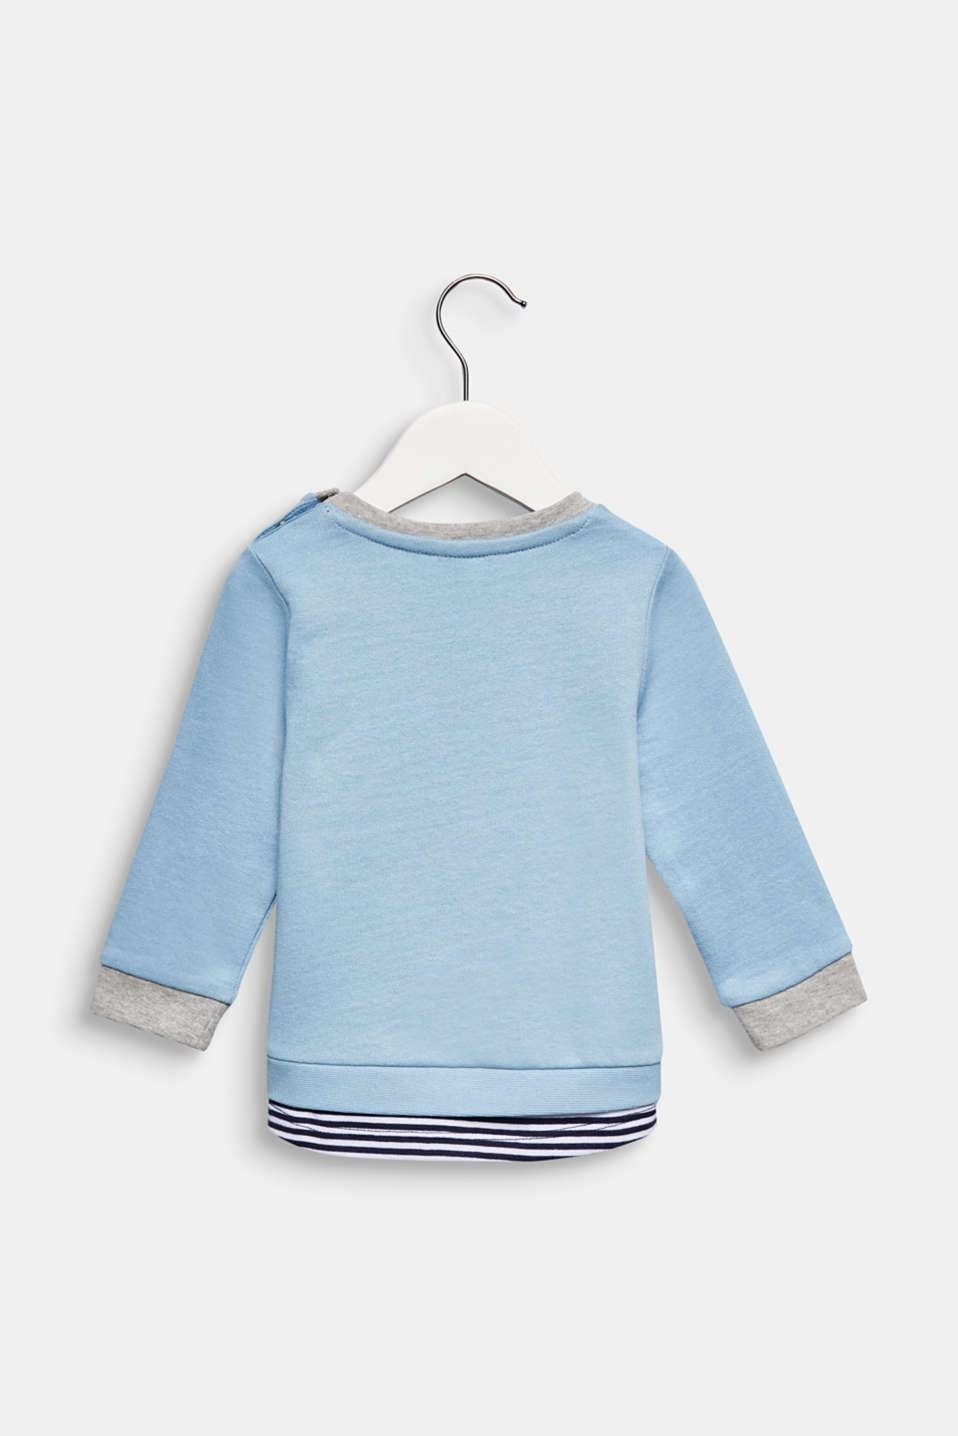 Sweatshirt with a print, 100% cotton, LCLIGHT BLUE, detail image number 1